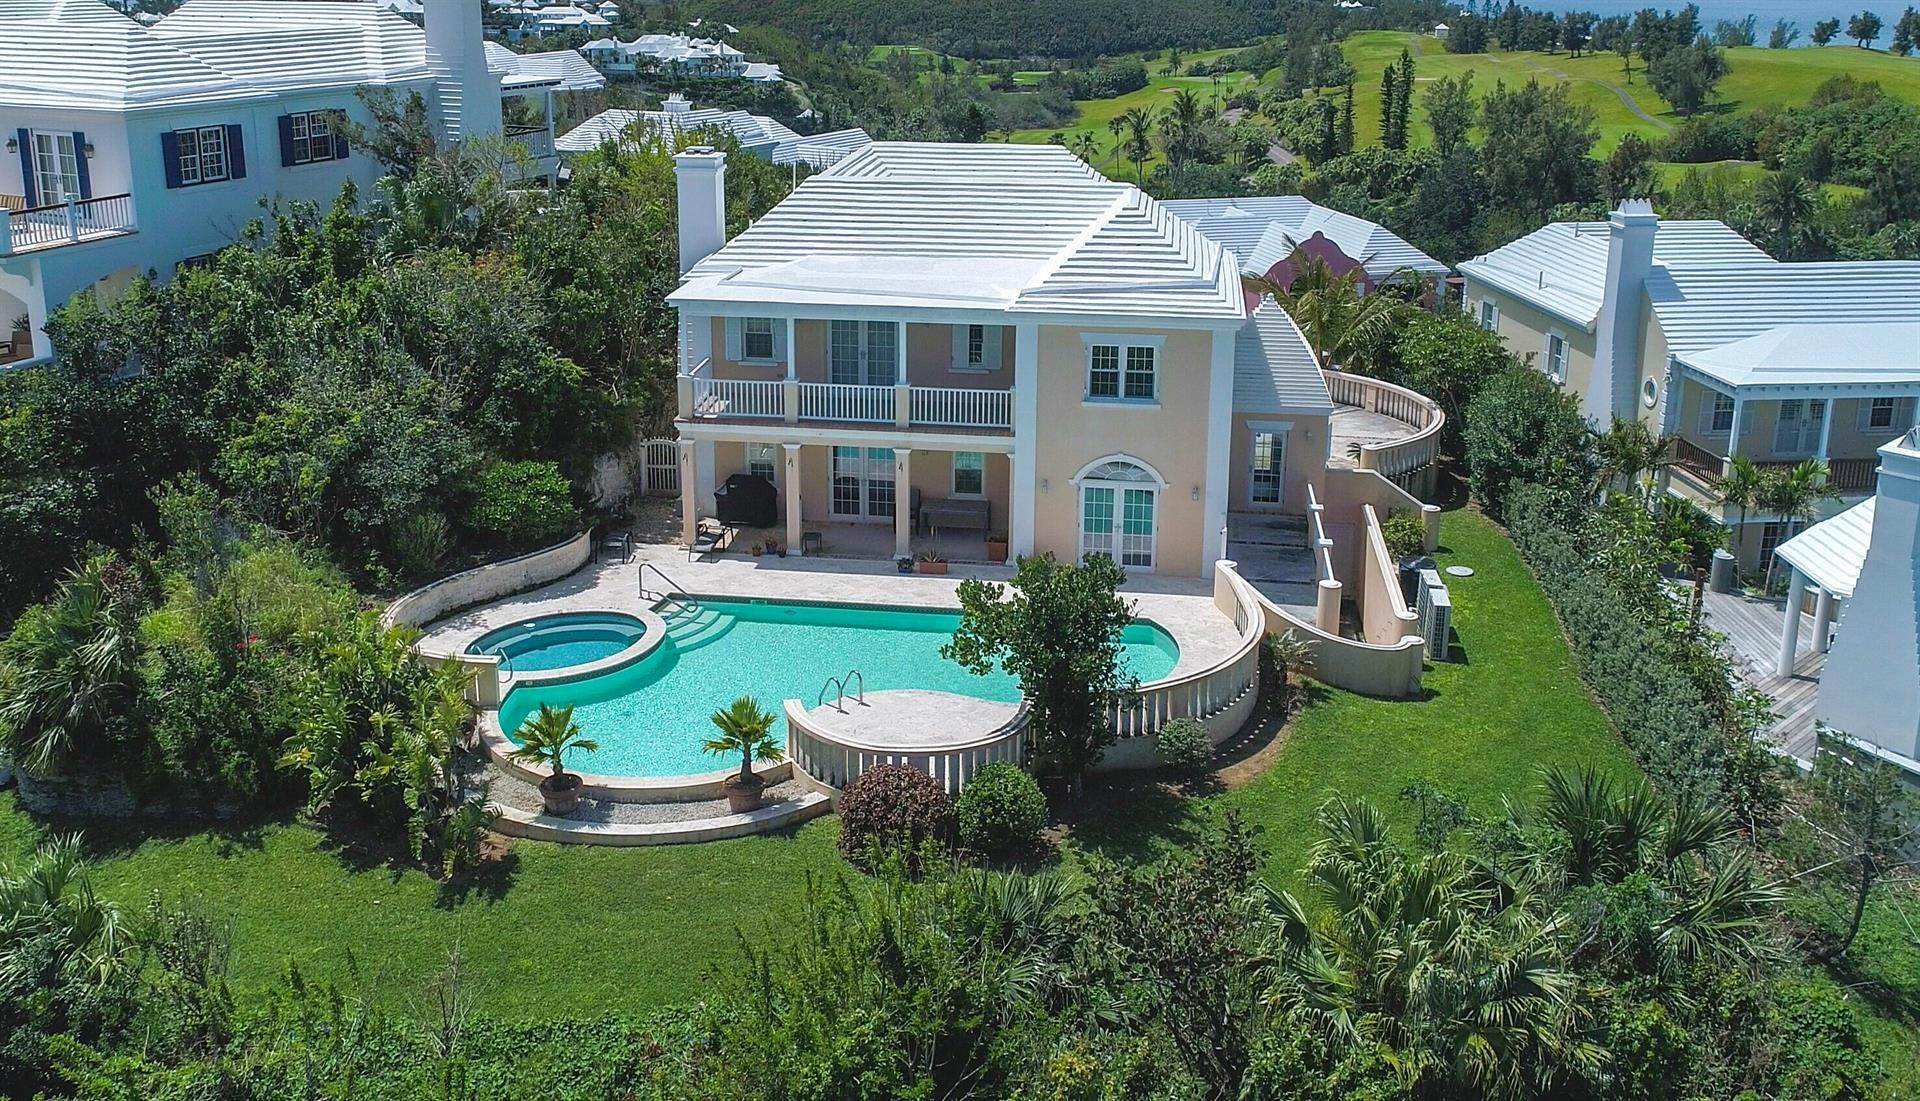 Tucker's Point Club Estate Home 15 Ship's Hill, St Georges Parish, Bermuda HS02 버뮤다에 Single Family Homes